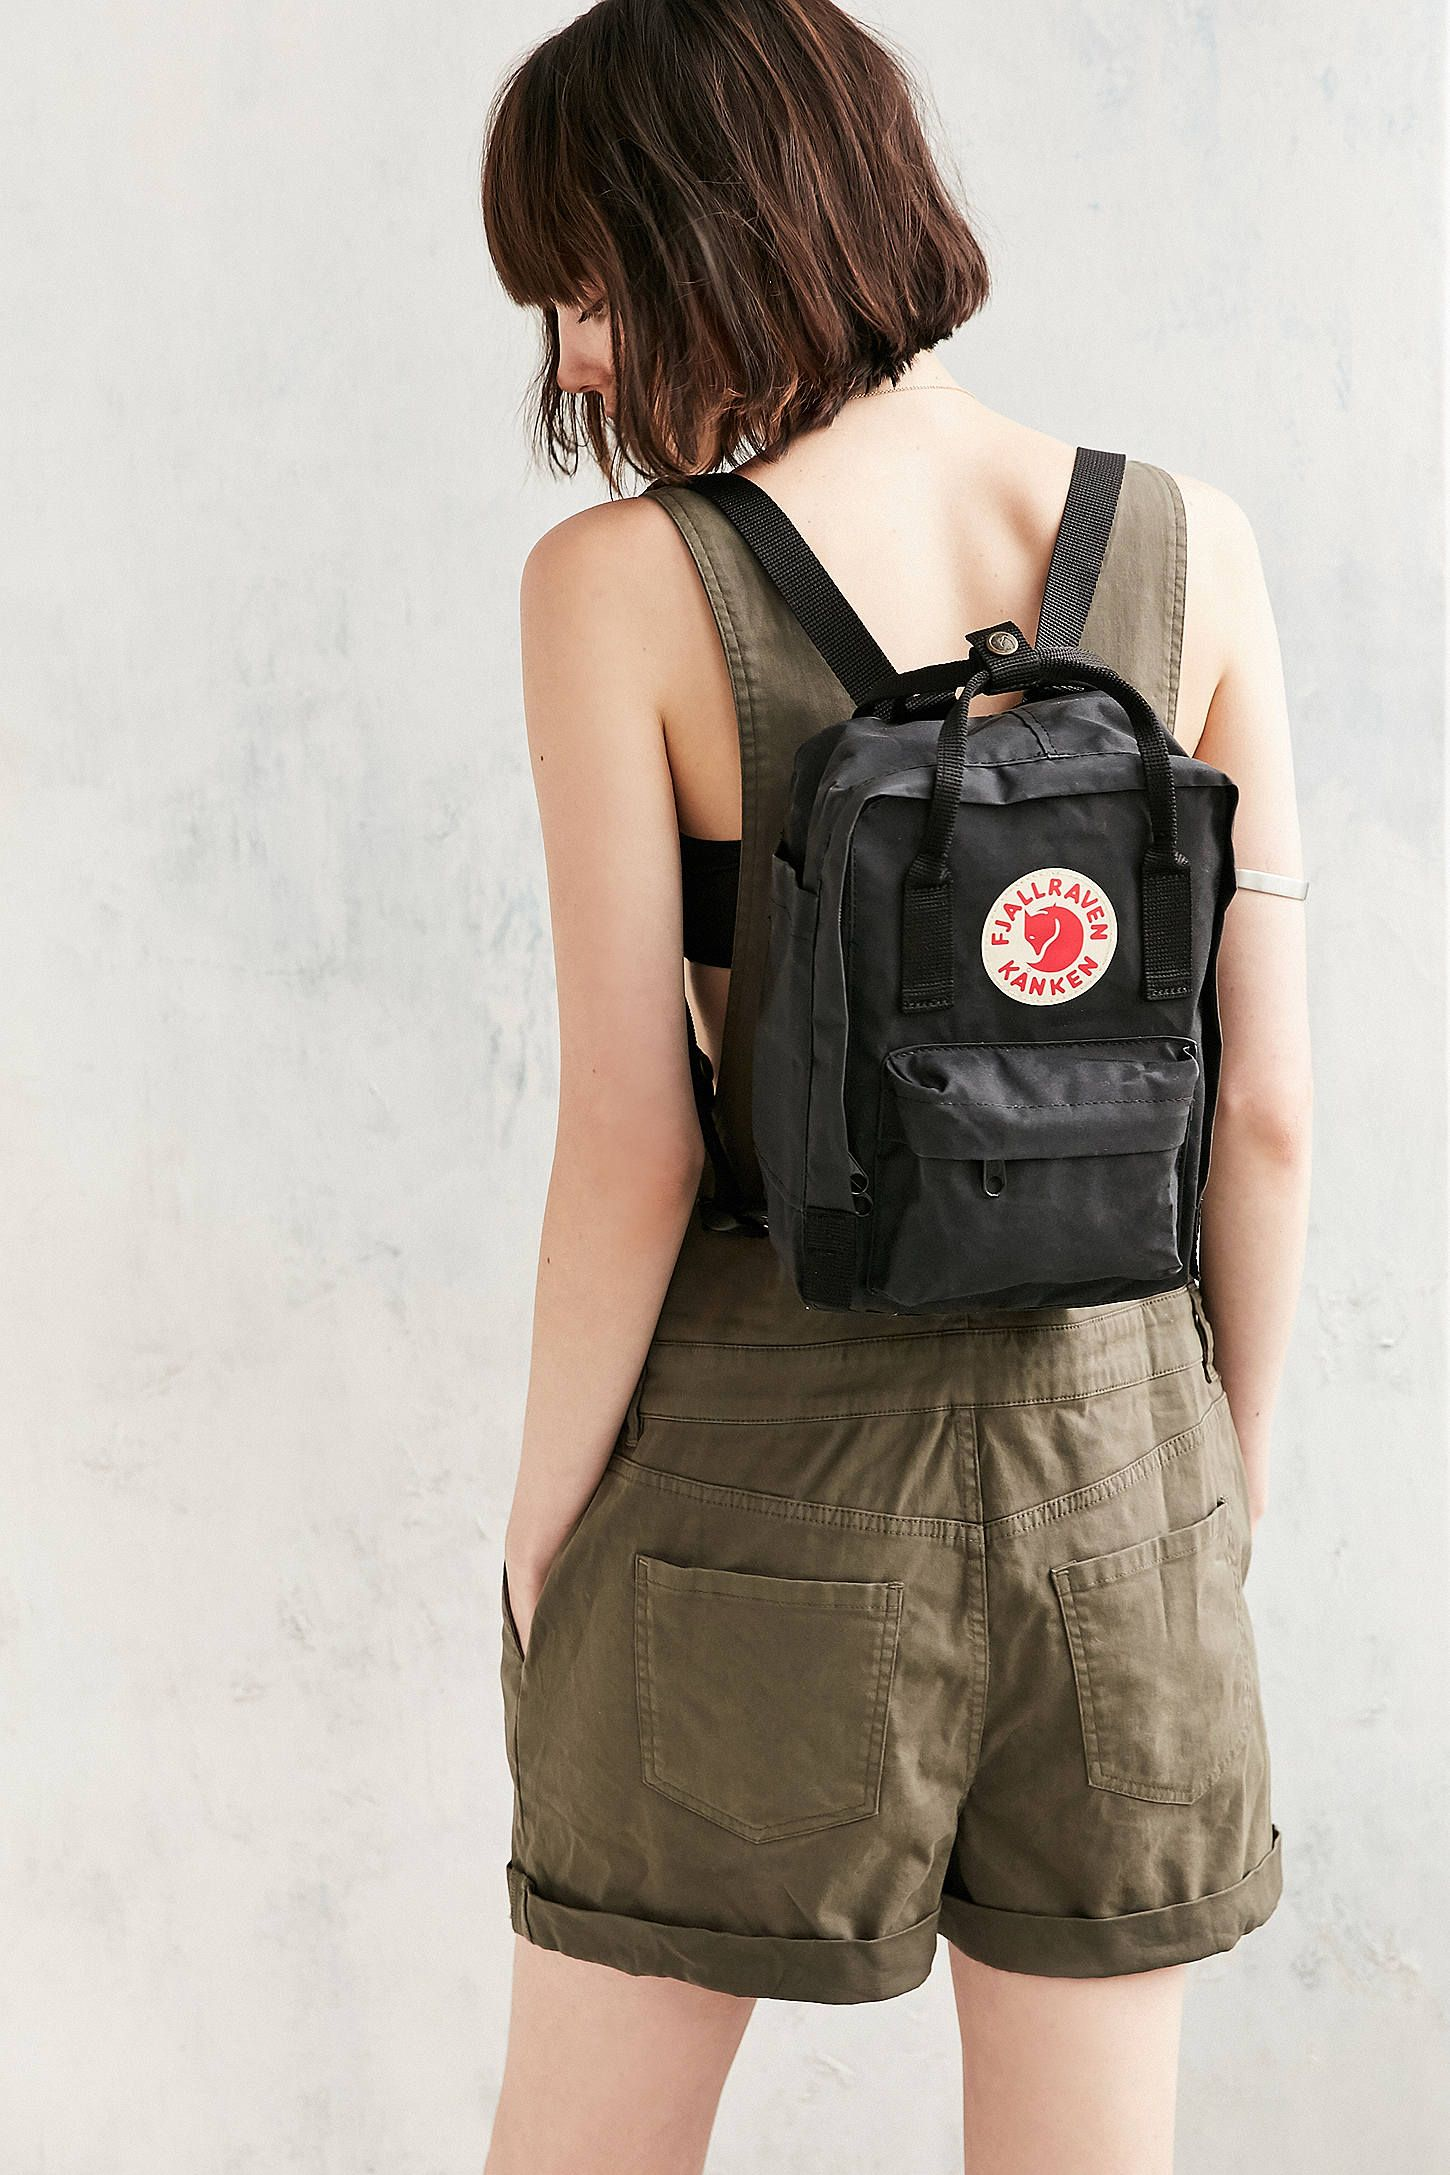 c1879997c447 Shop the Fjallraven Kanken Mini Backpack and more Urban Outfitters at Urban  Outfitters. Read customer reviews